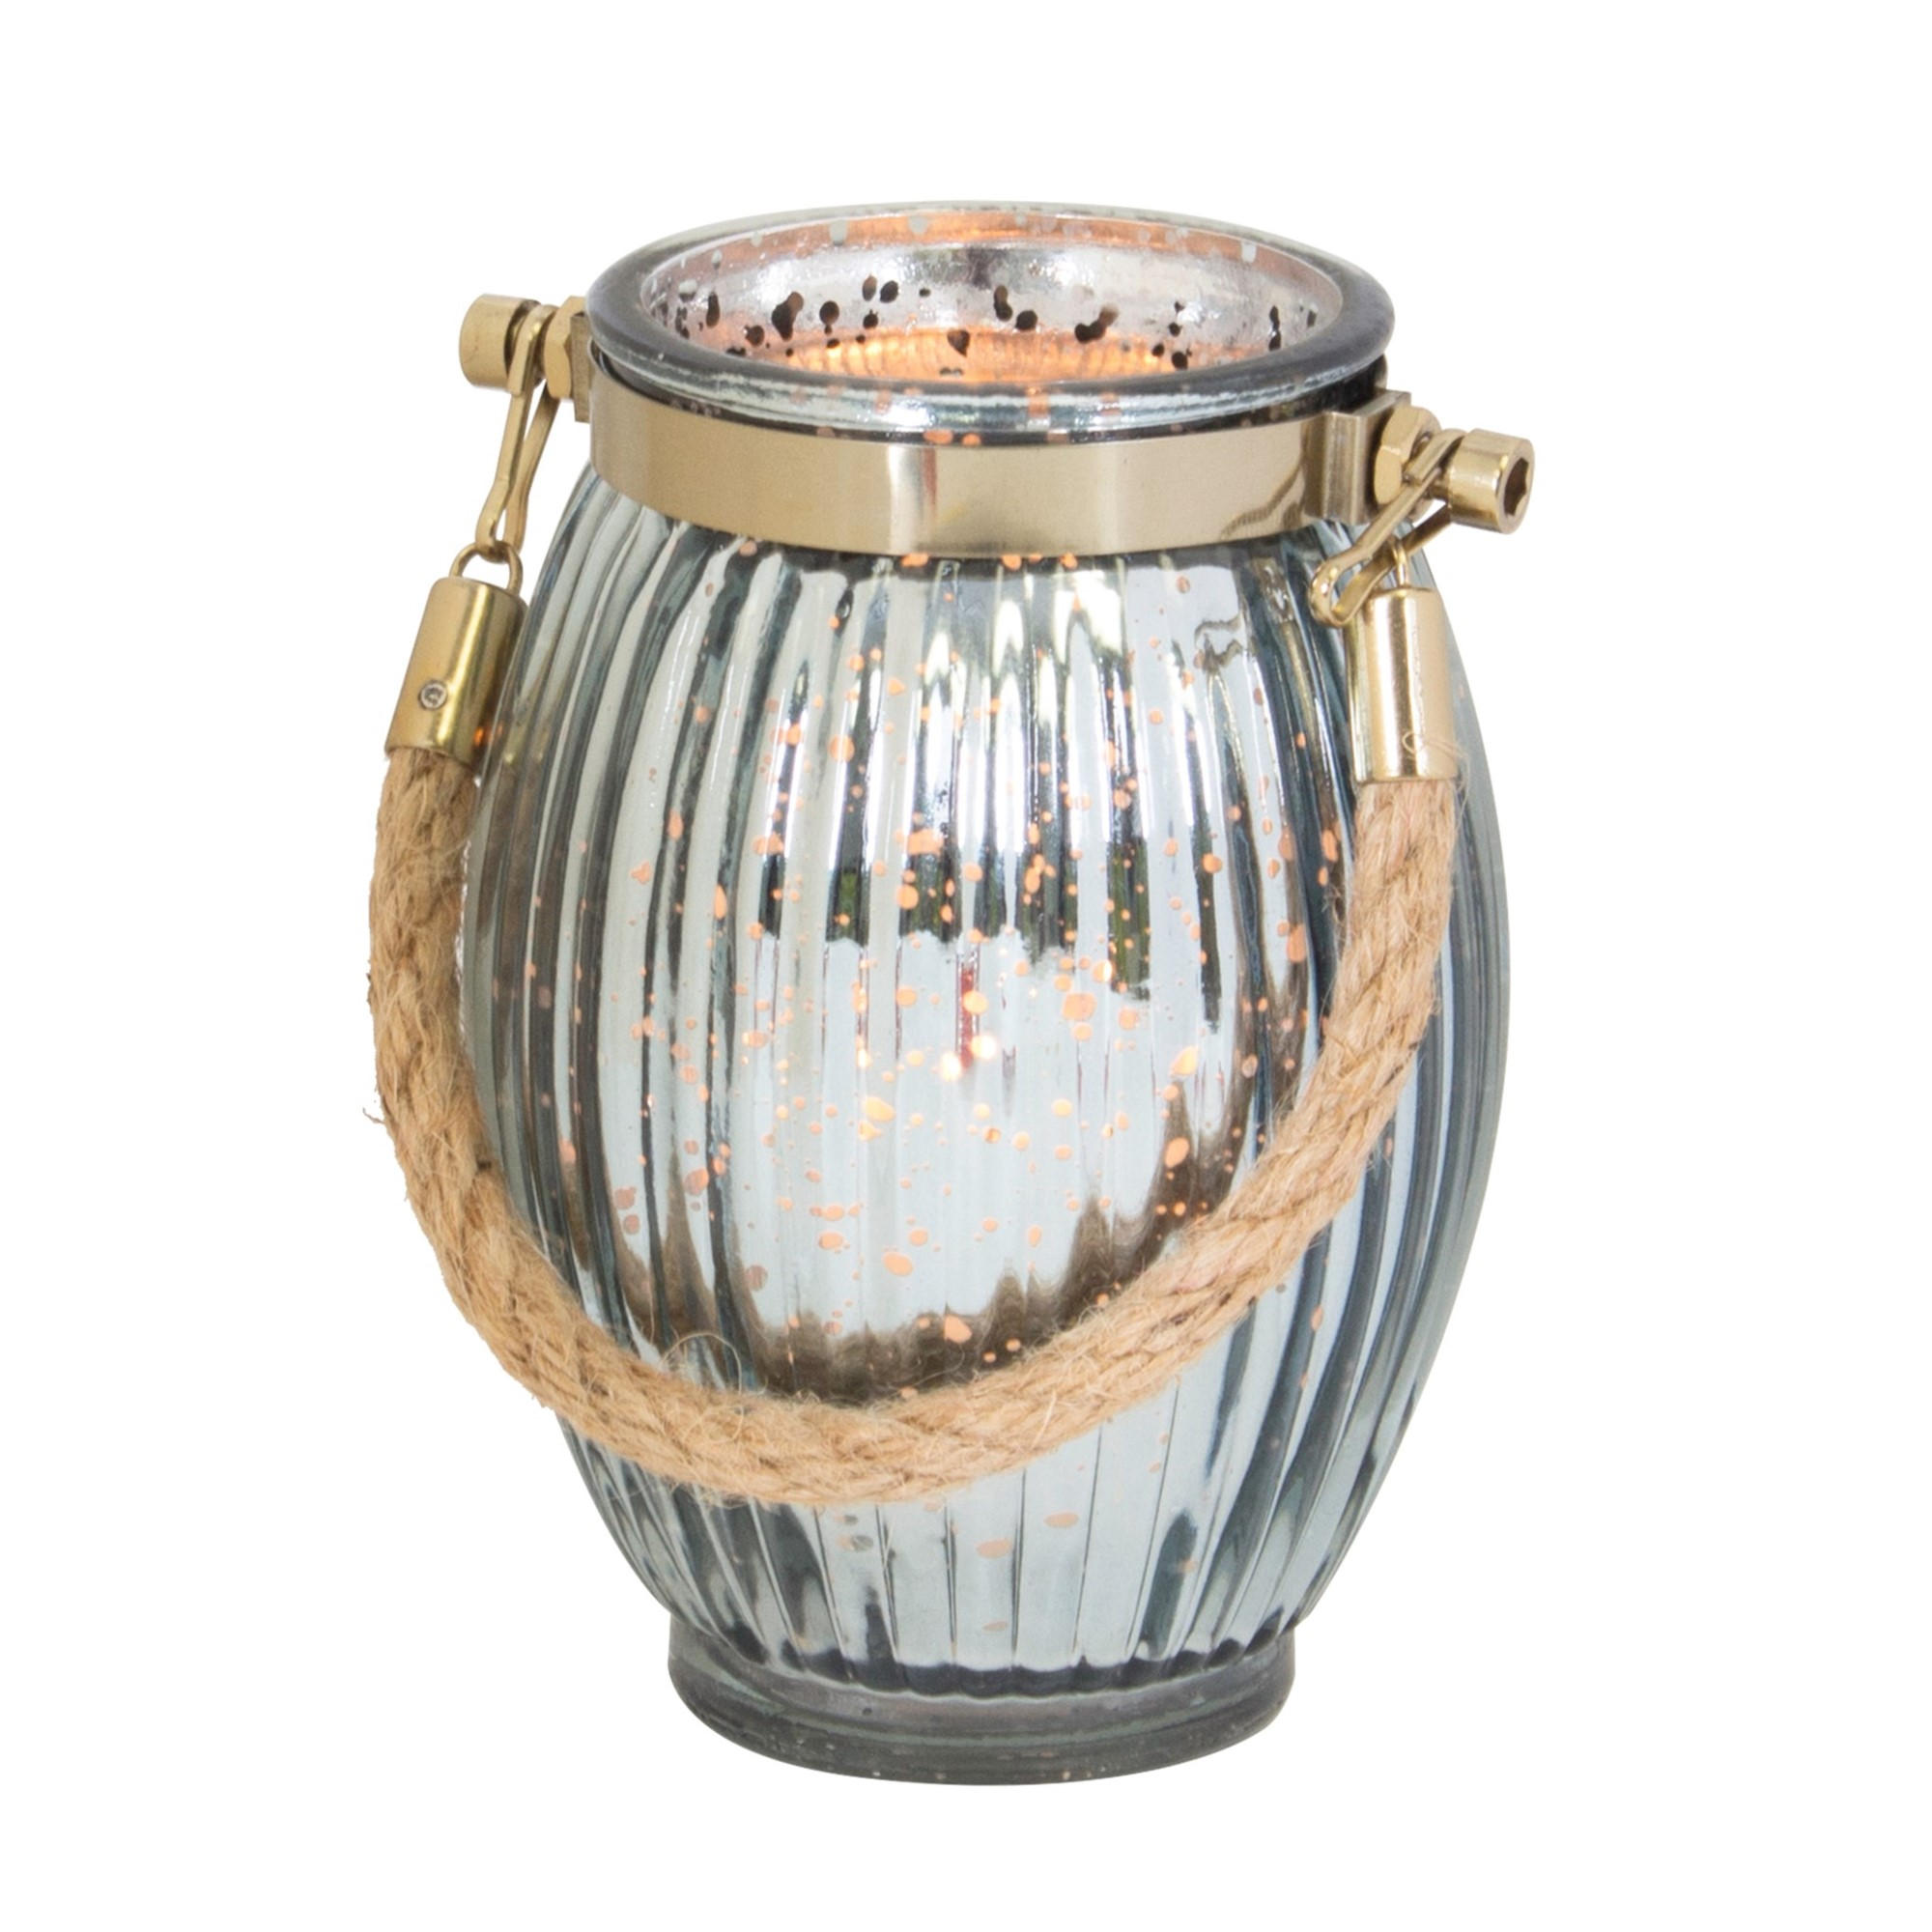 Metallic Lantern with Jute, Amanda's House Of Elegance  ($22.95)